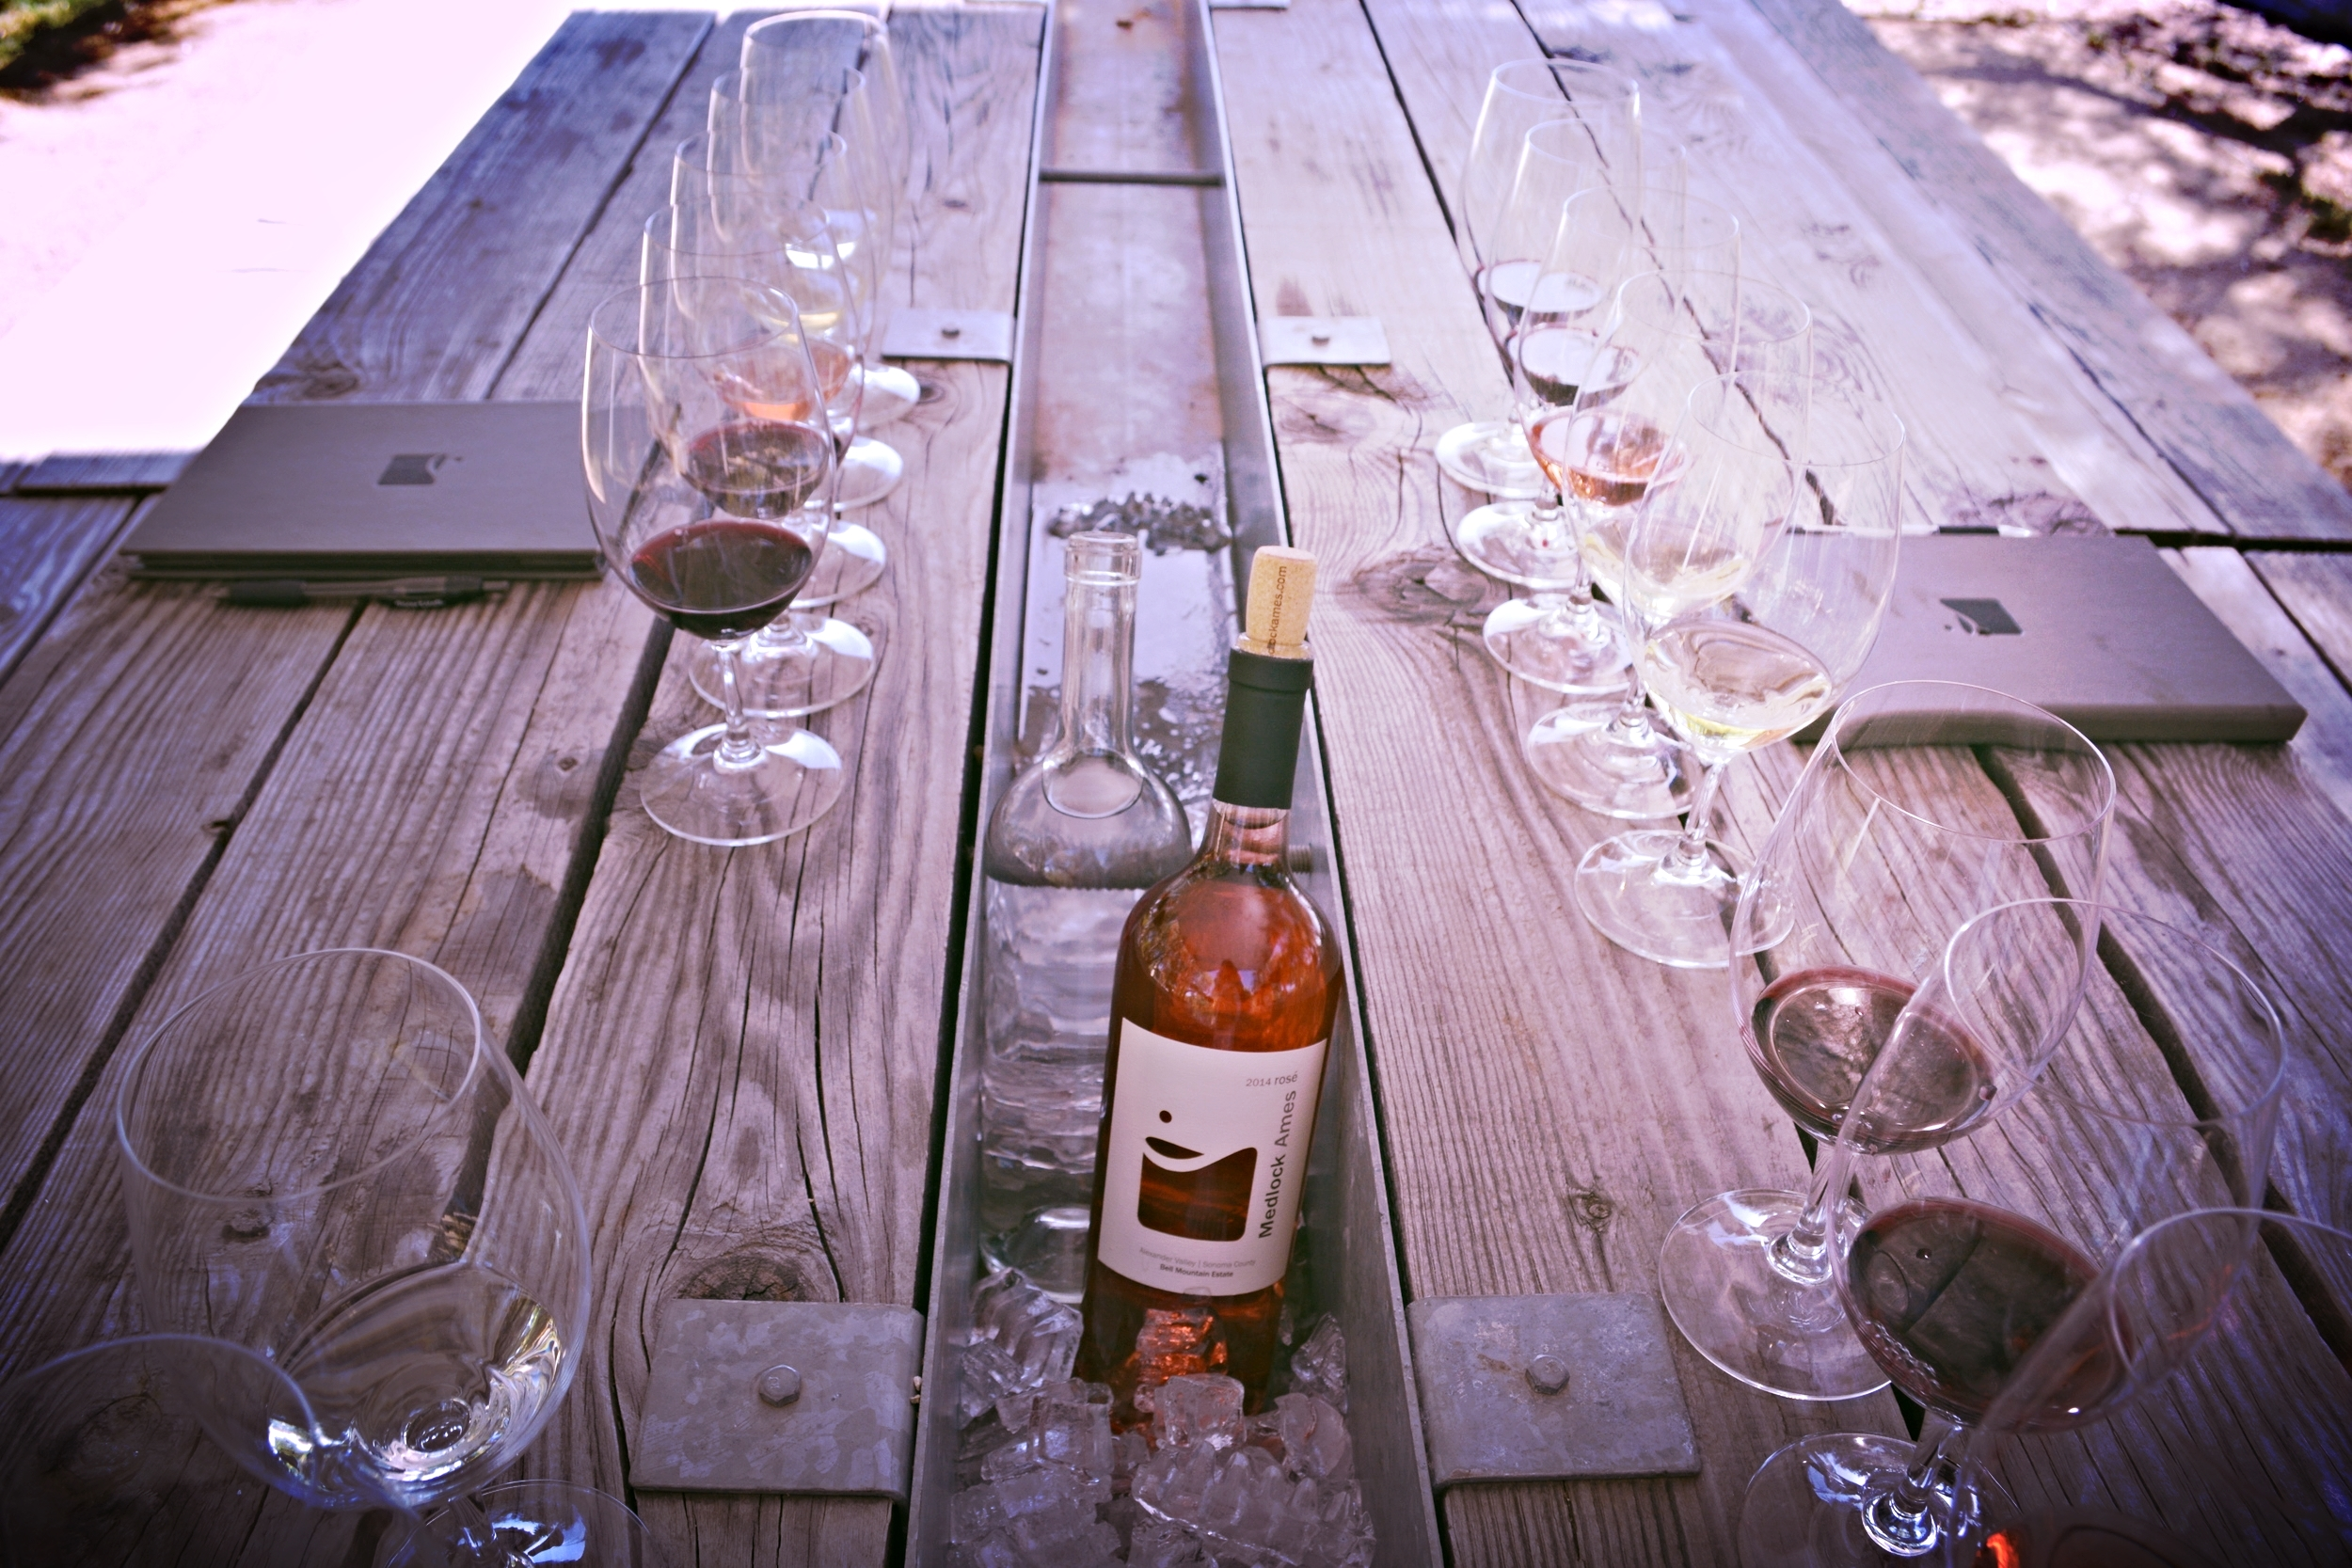 Wine Tourist - California Rose - Tasting Plein Air at Medlock Ames - Photo credit Leslie Rosa